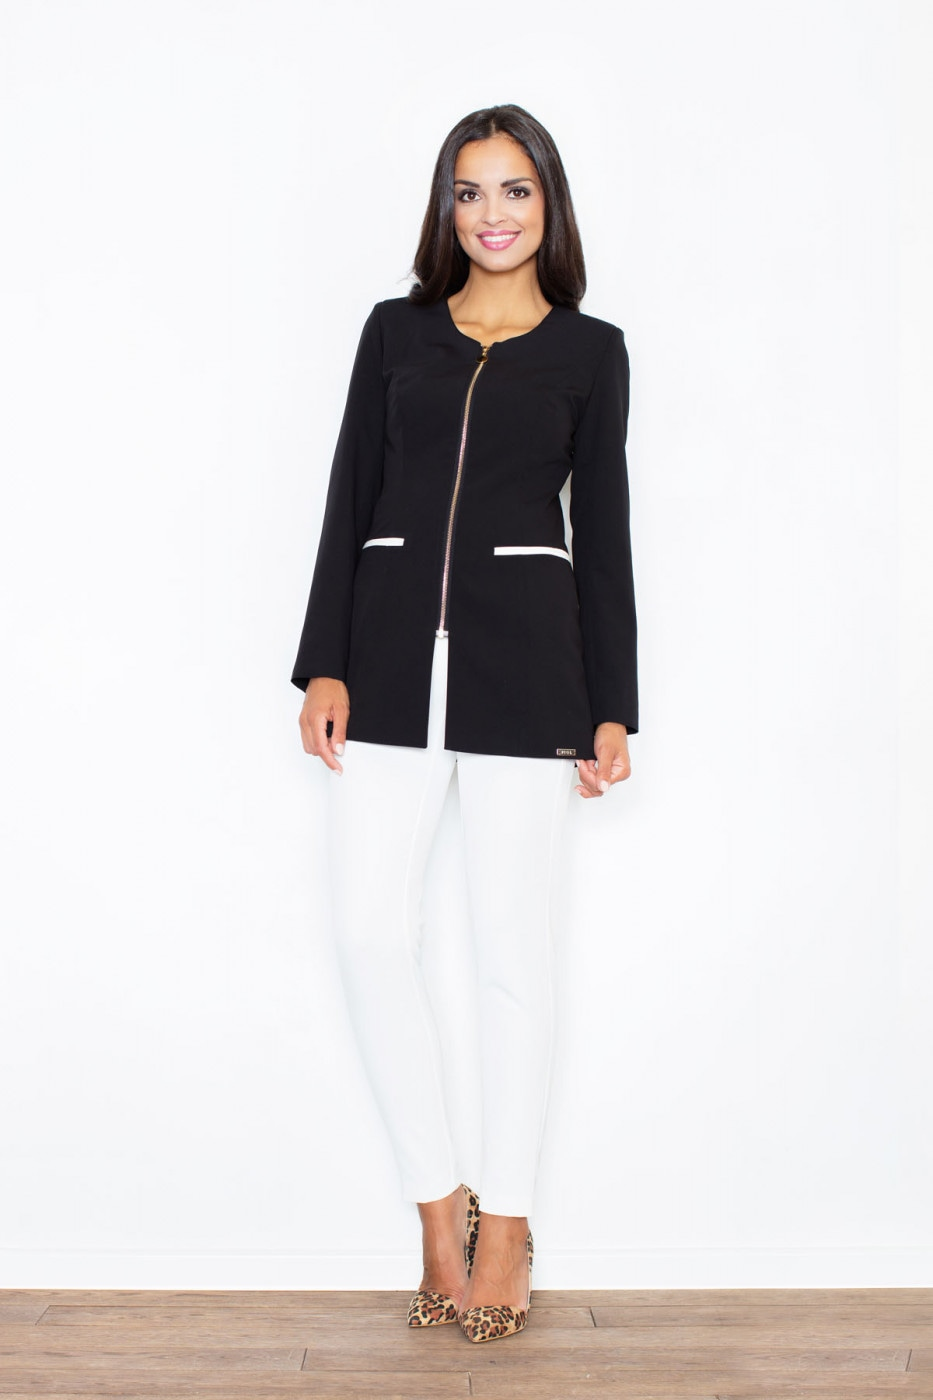 Figl Woman's Jacket M409 Black-Ecru